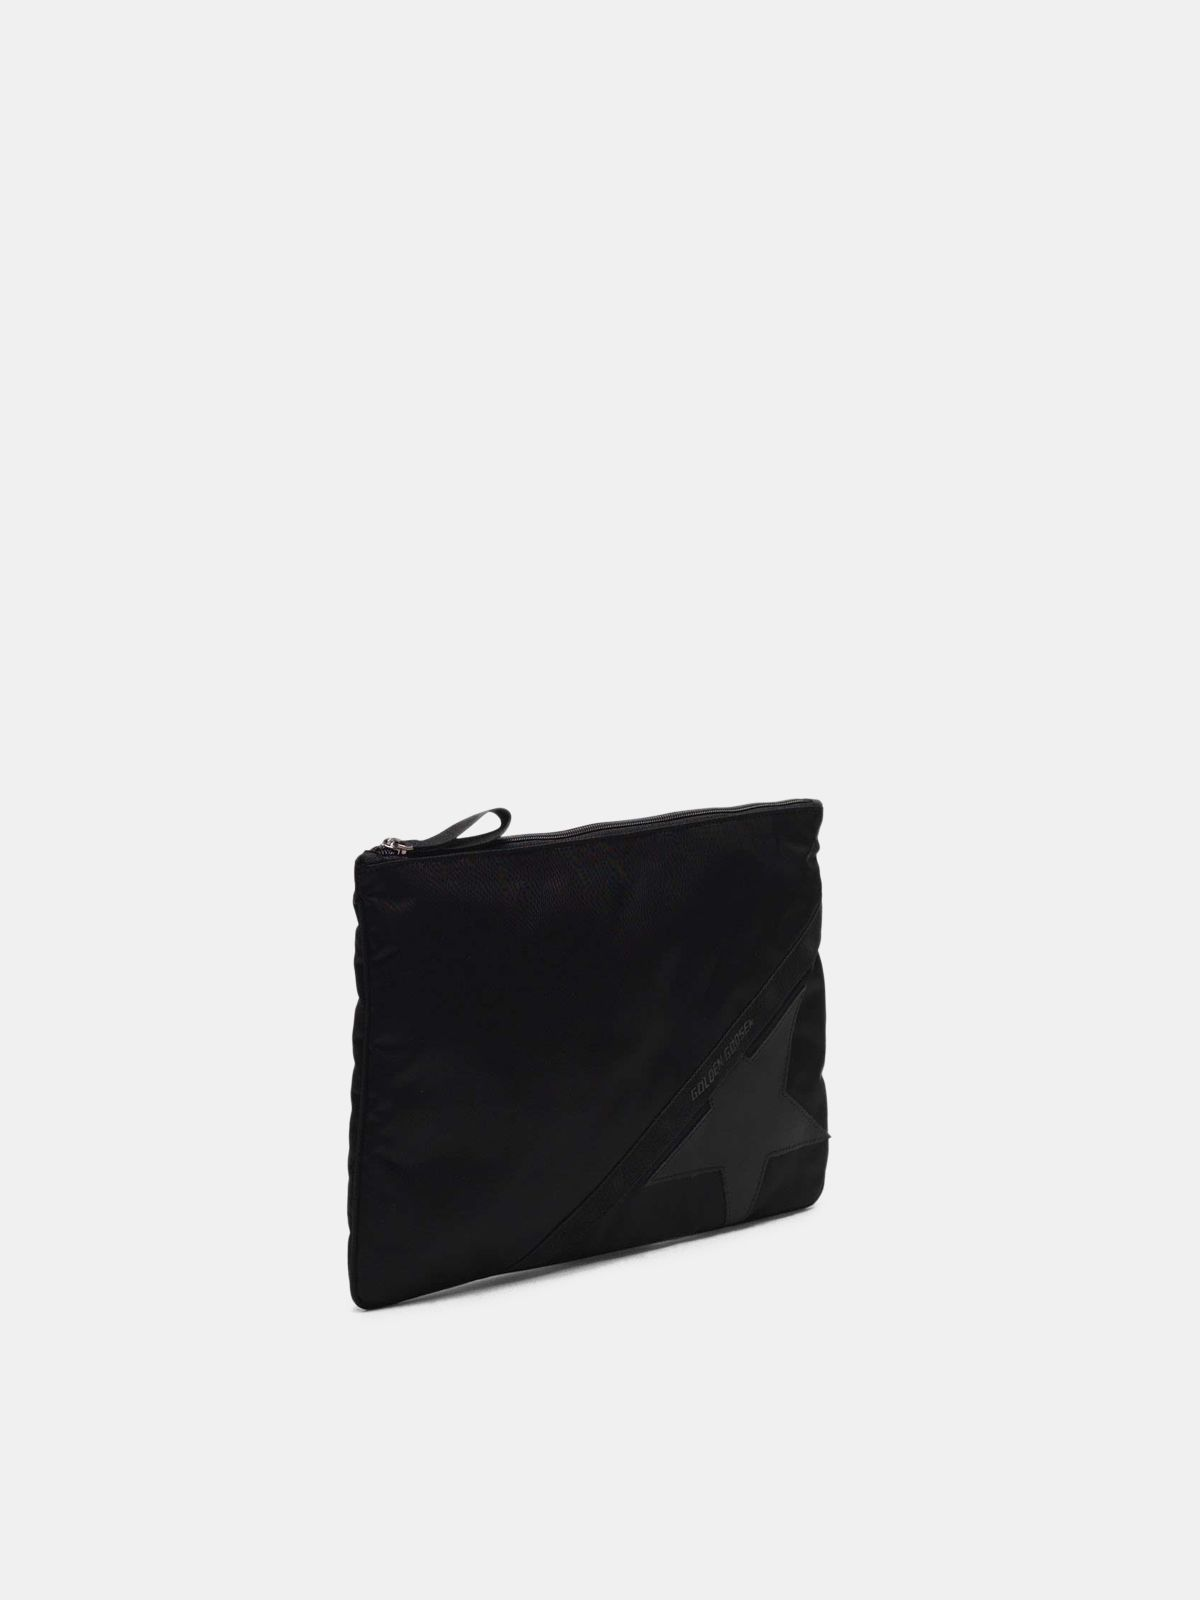 Golden Goose - Large black nylon Journey pouch in